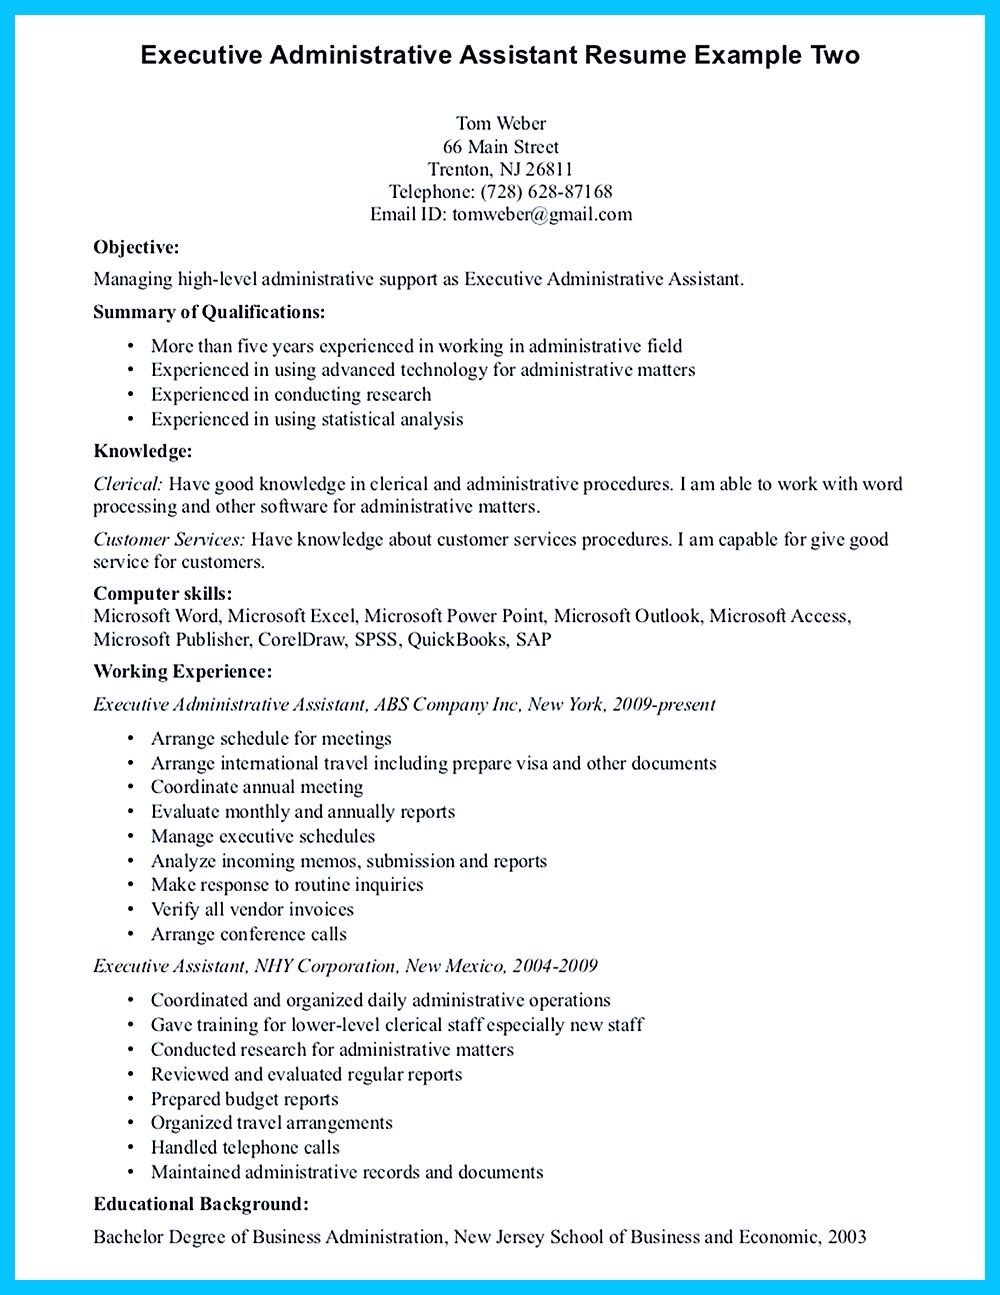 Administrative Assistant Resume Sample In Writing Entry Level Administrative Assistant Resume You Need